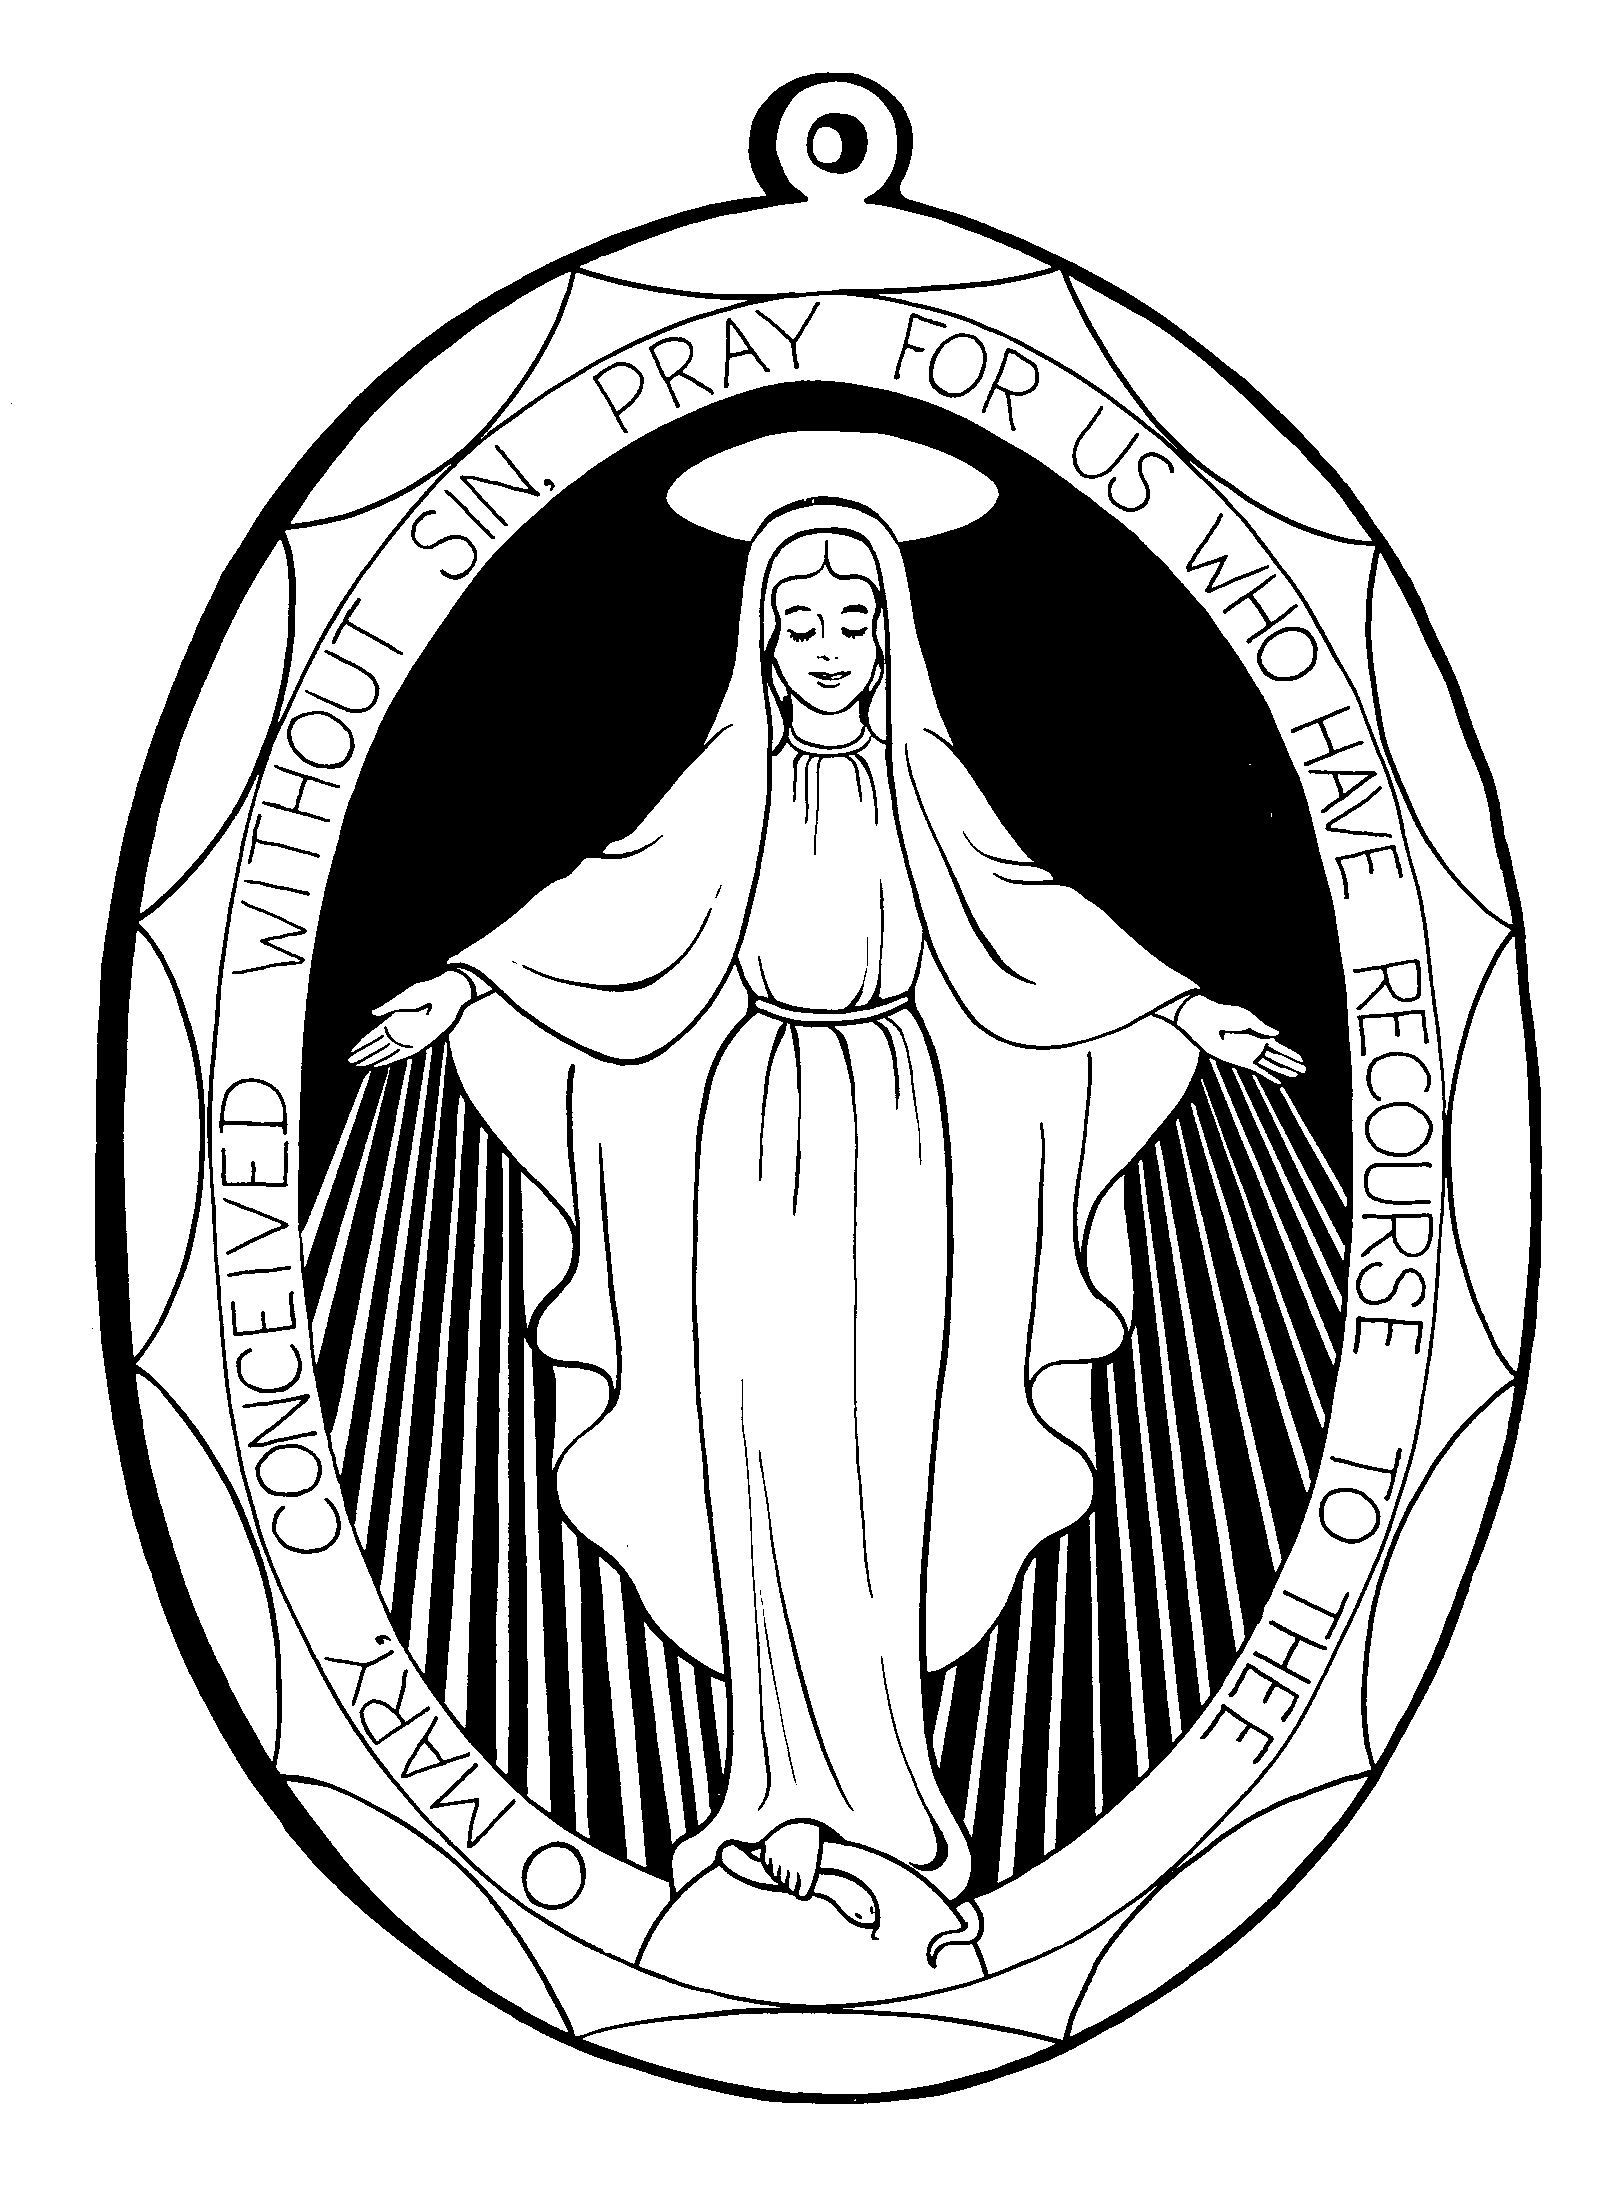 Immaculate conception clipart free.